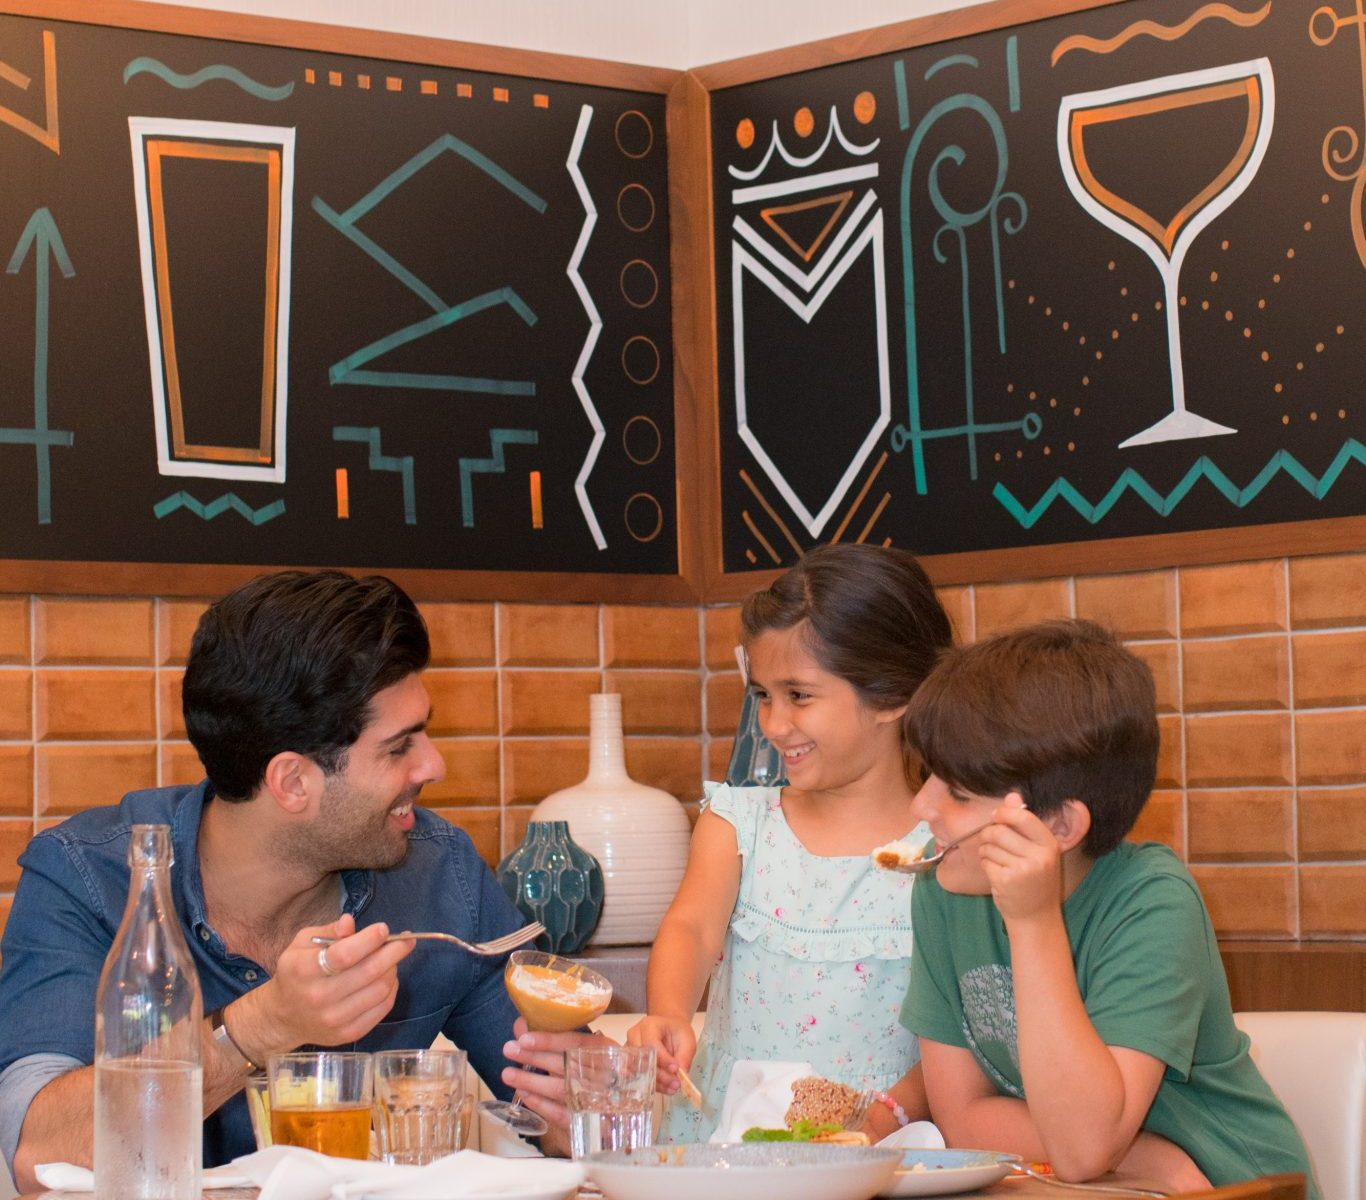 Father and kids eating at table